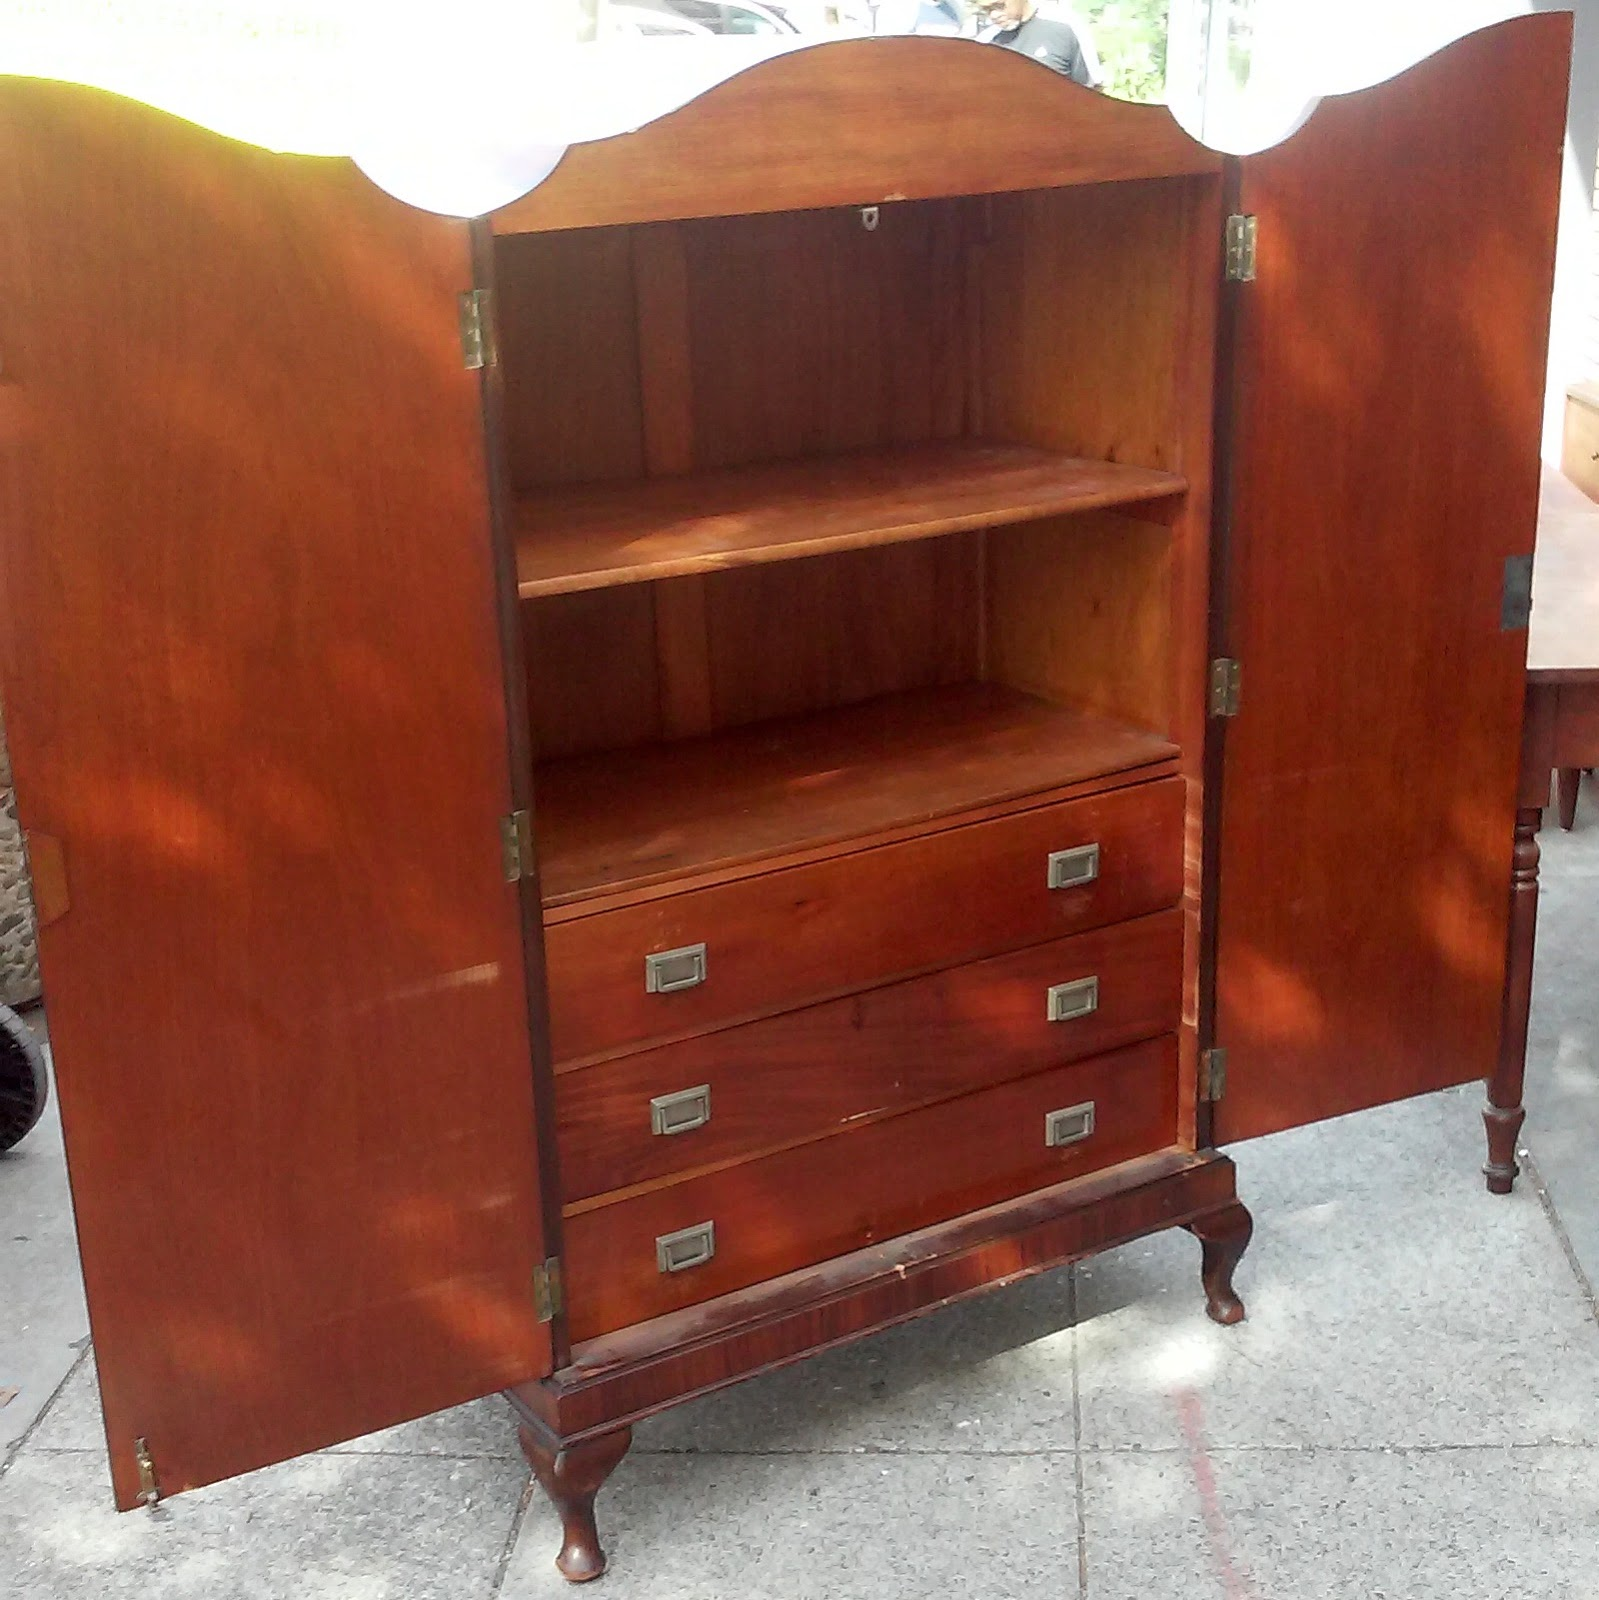 UHURU FURNITURE & COLLECTIBLES